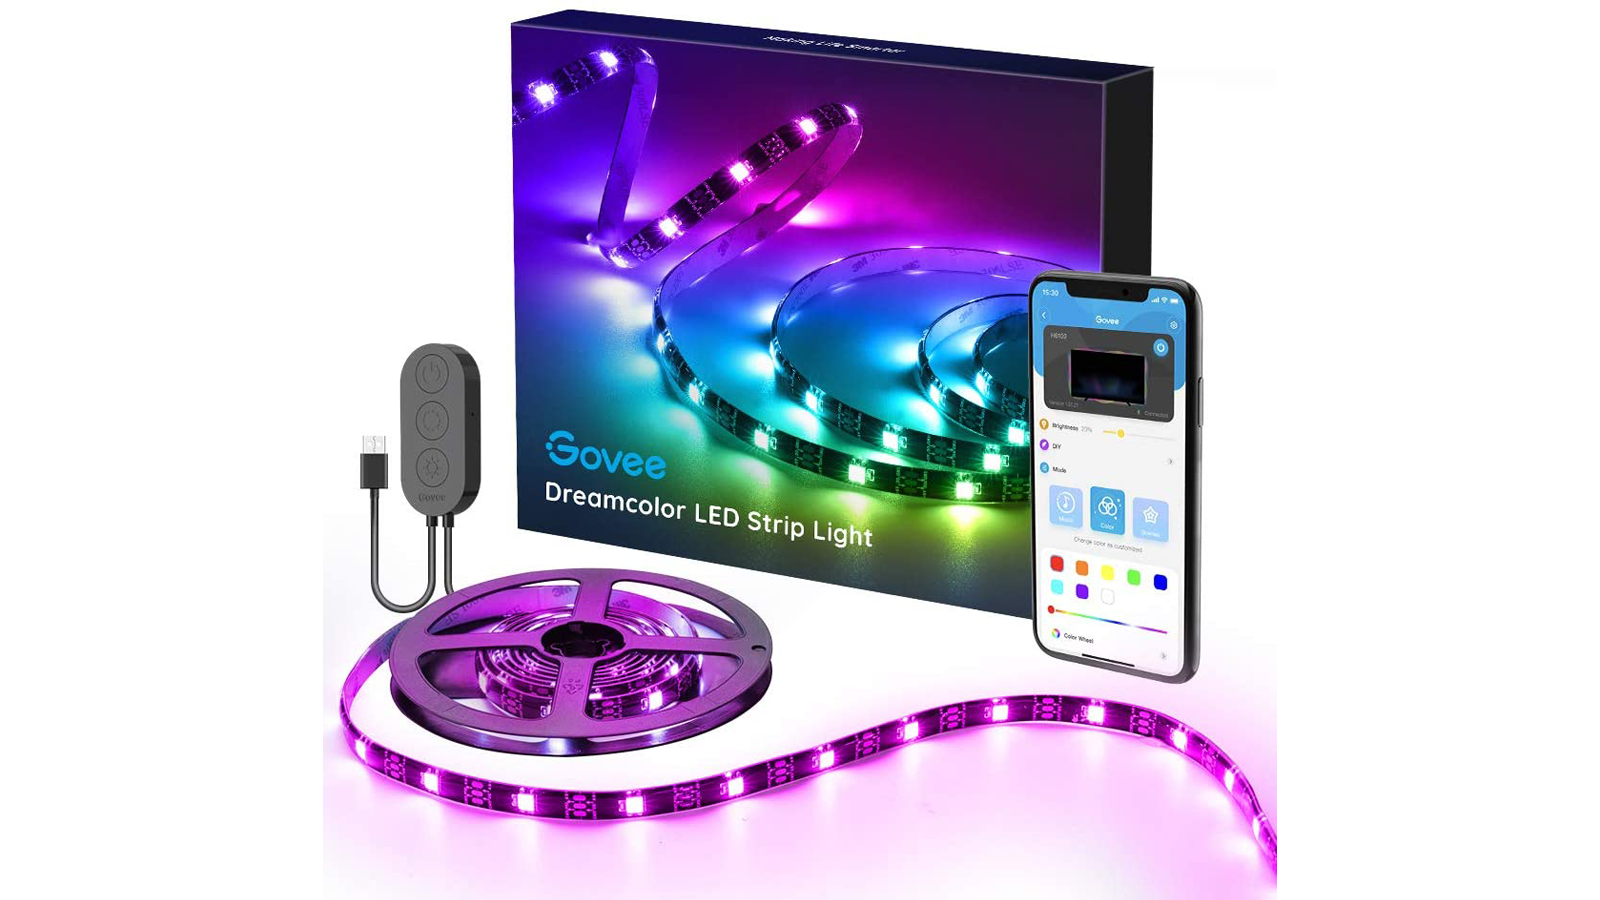 Govee LED Strip Lights for your desk, monitor, TV, or anywhere else fun colors for your office